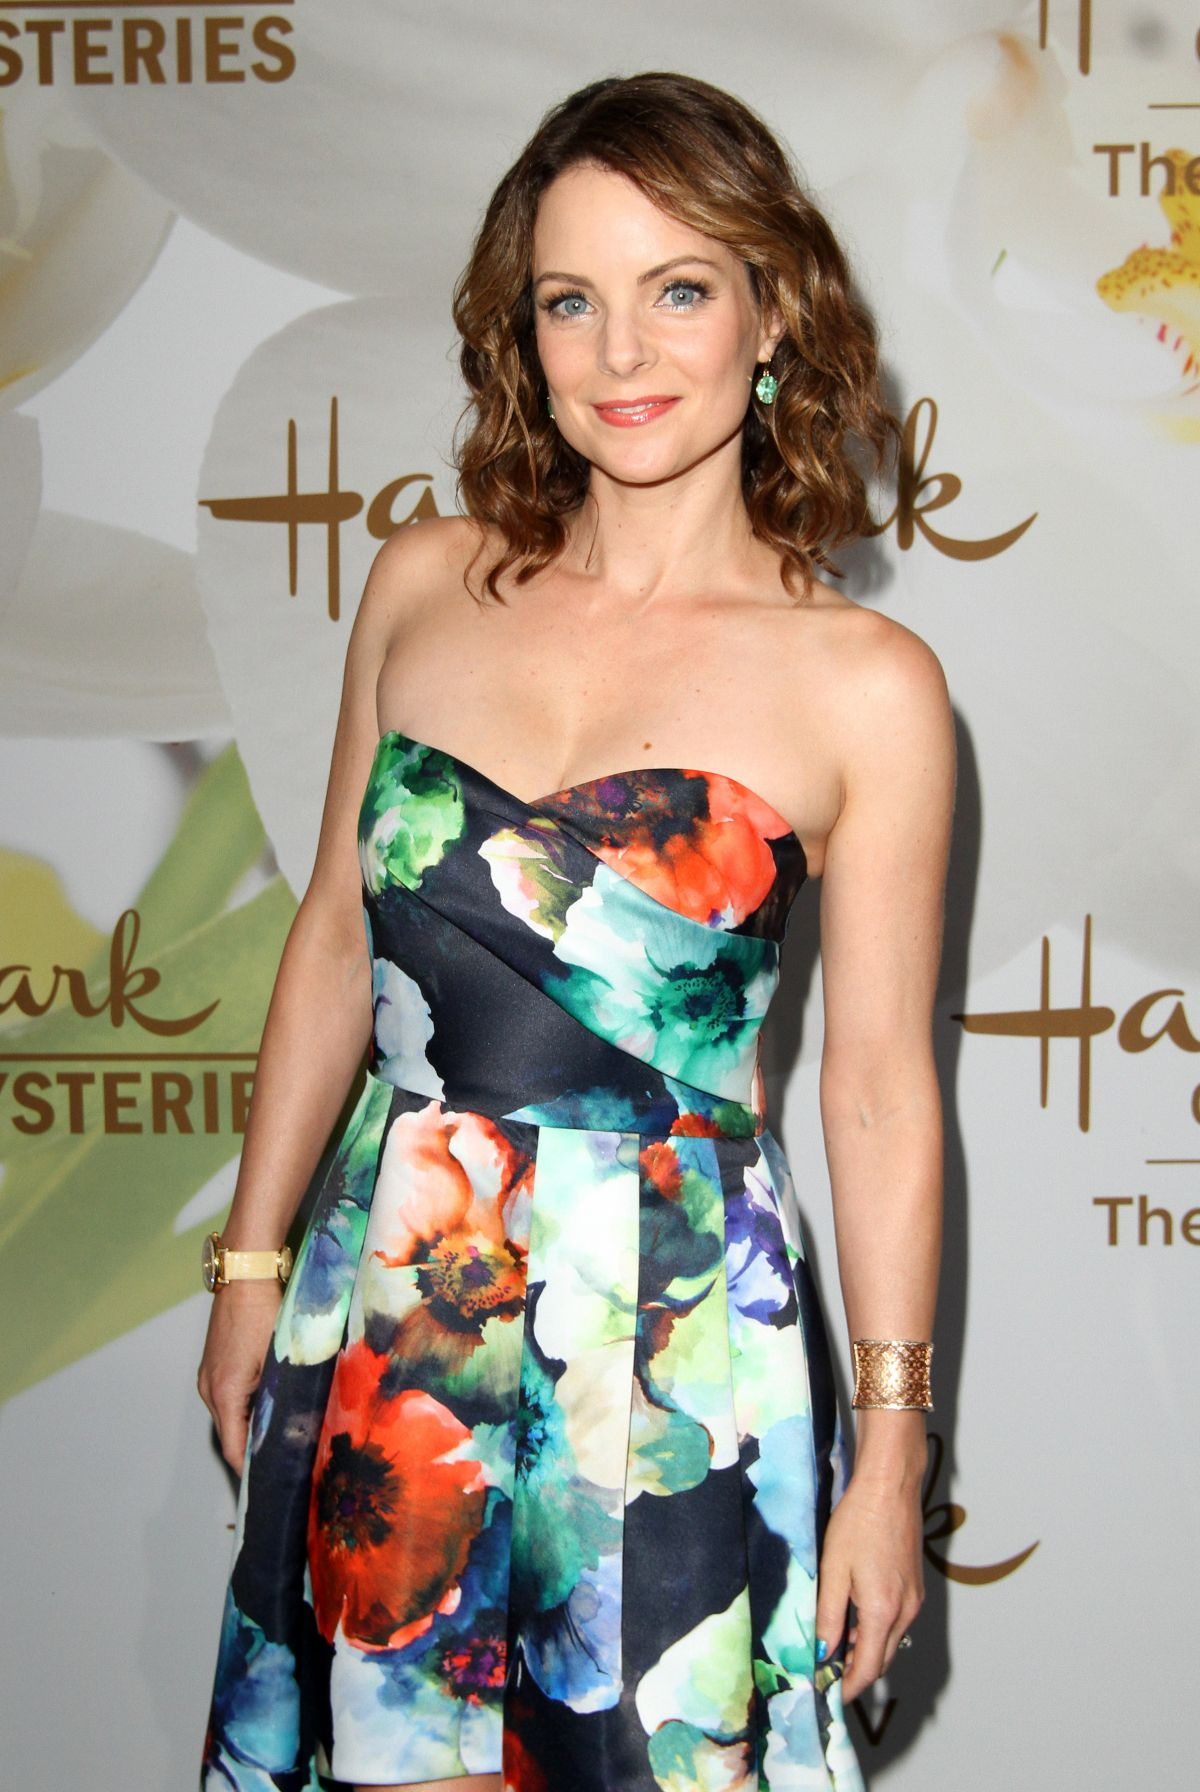 Kimberly Williams-Paisley At Hallmark Evening event, TCA Summer Press Tour in LA